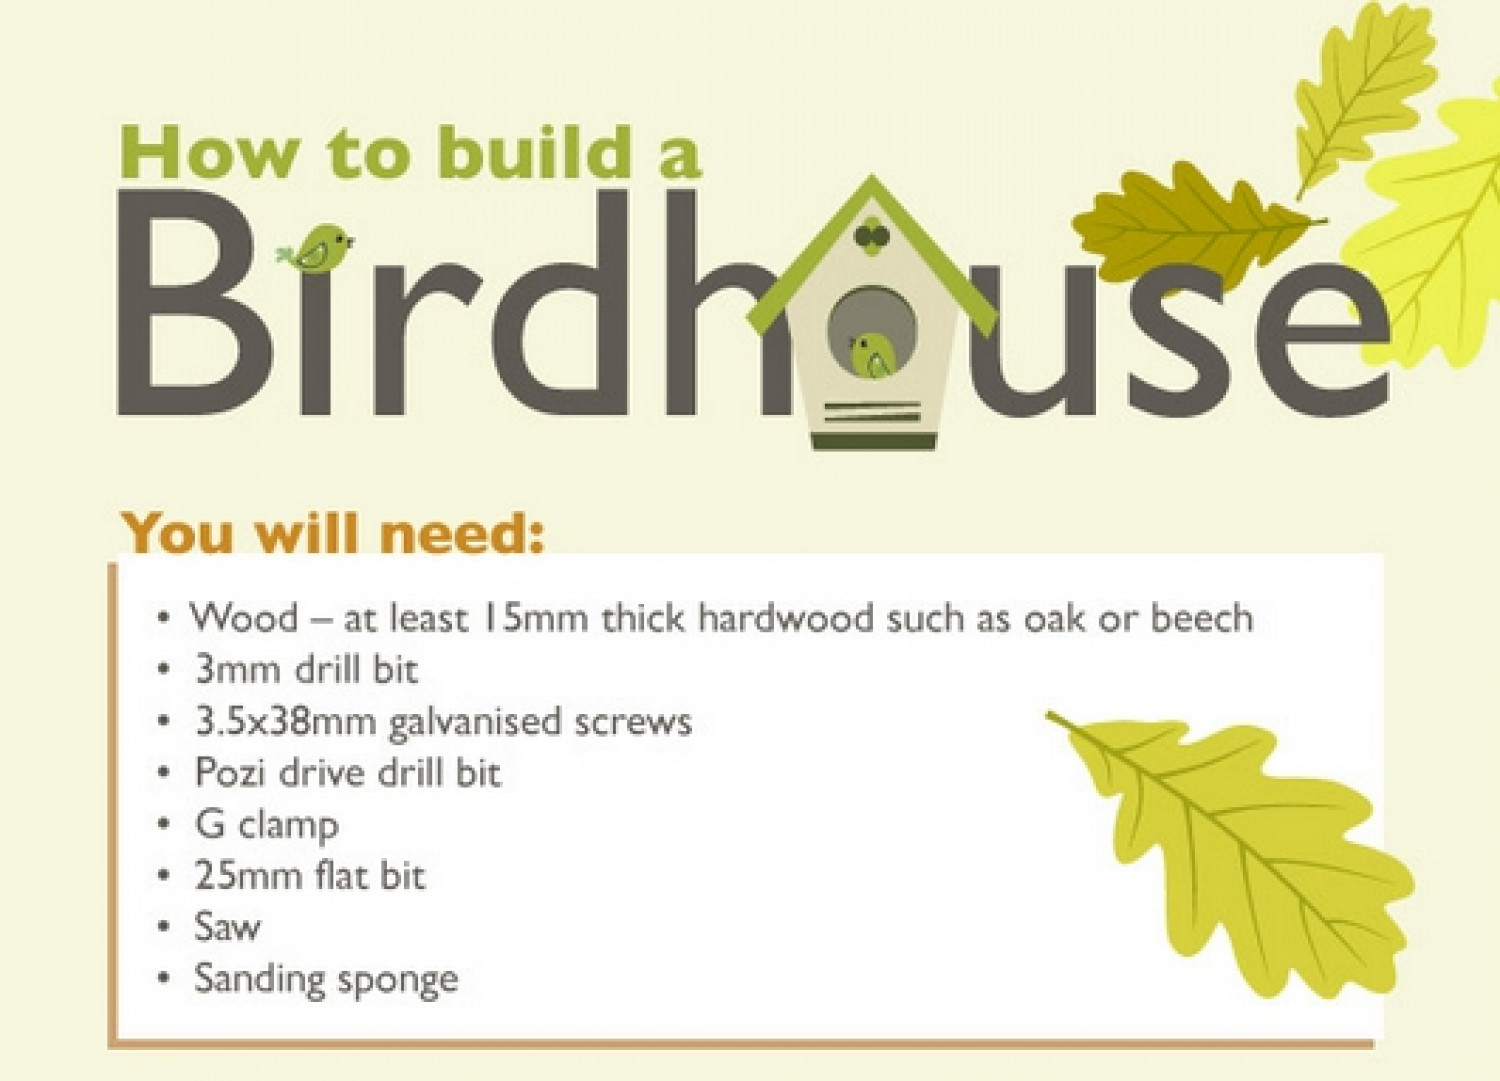 How to Build a Birdhouse Infographic